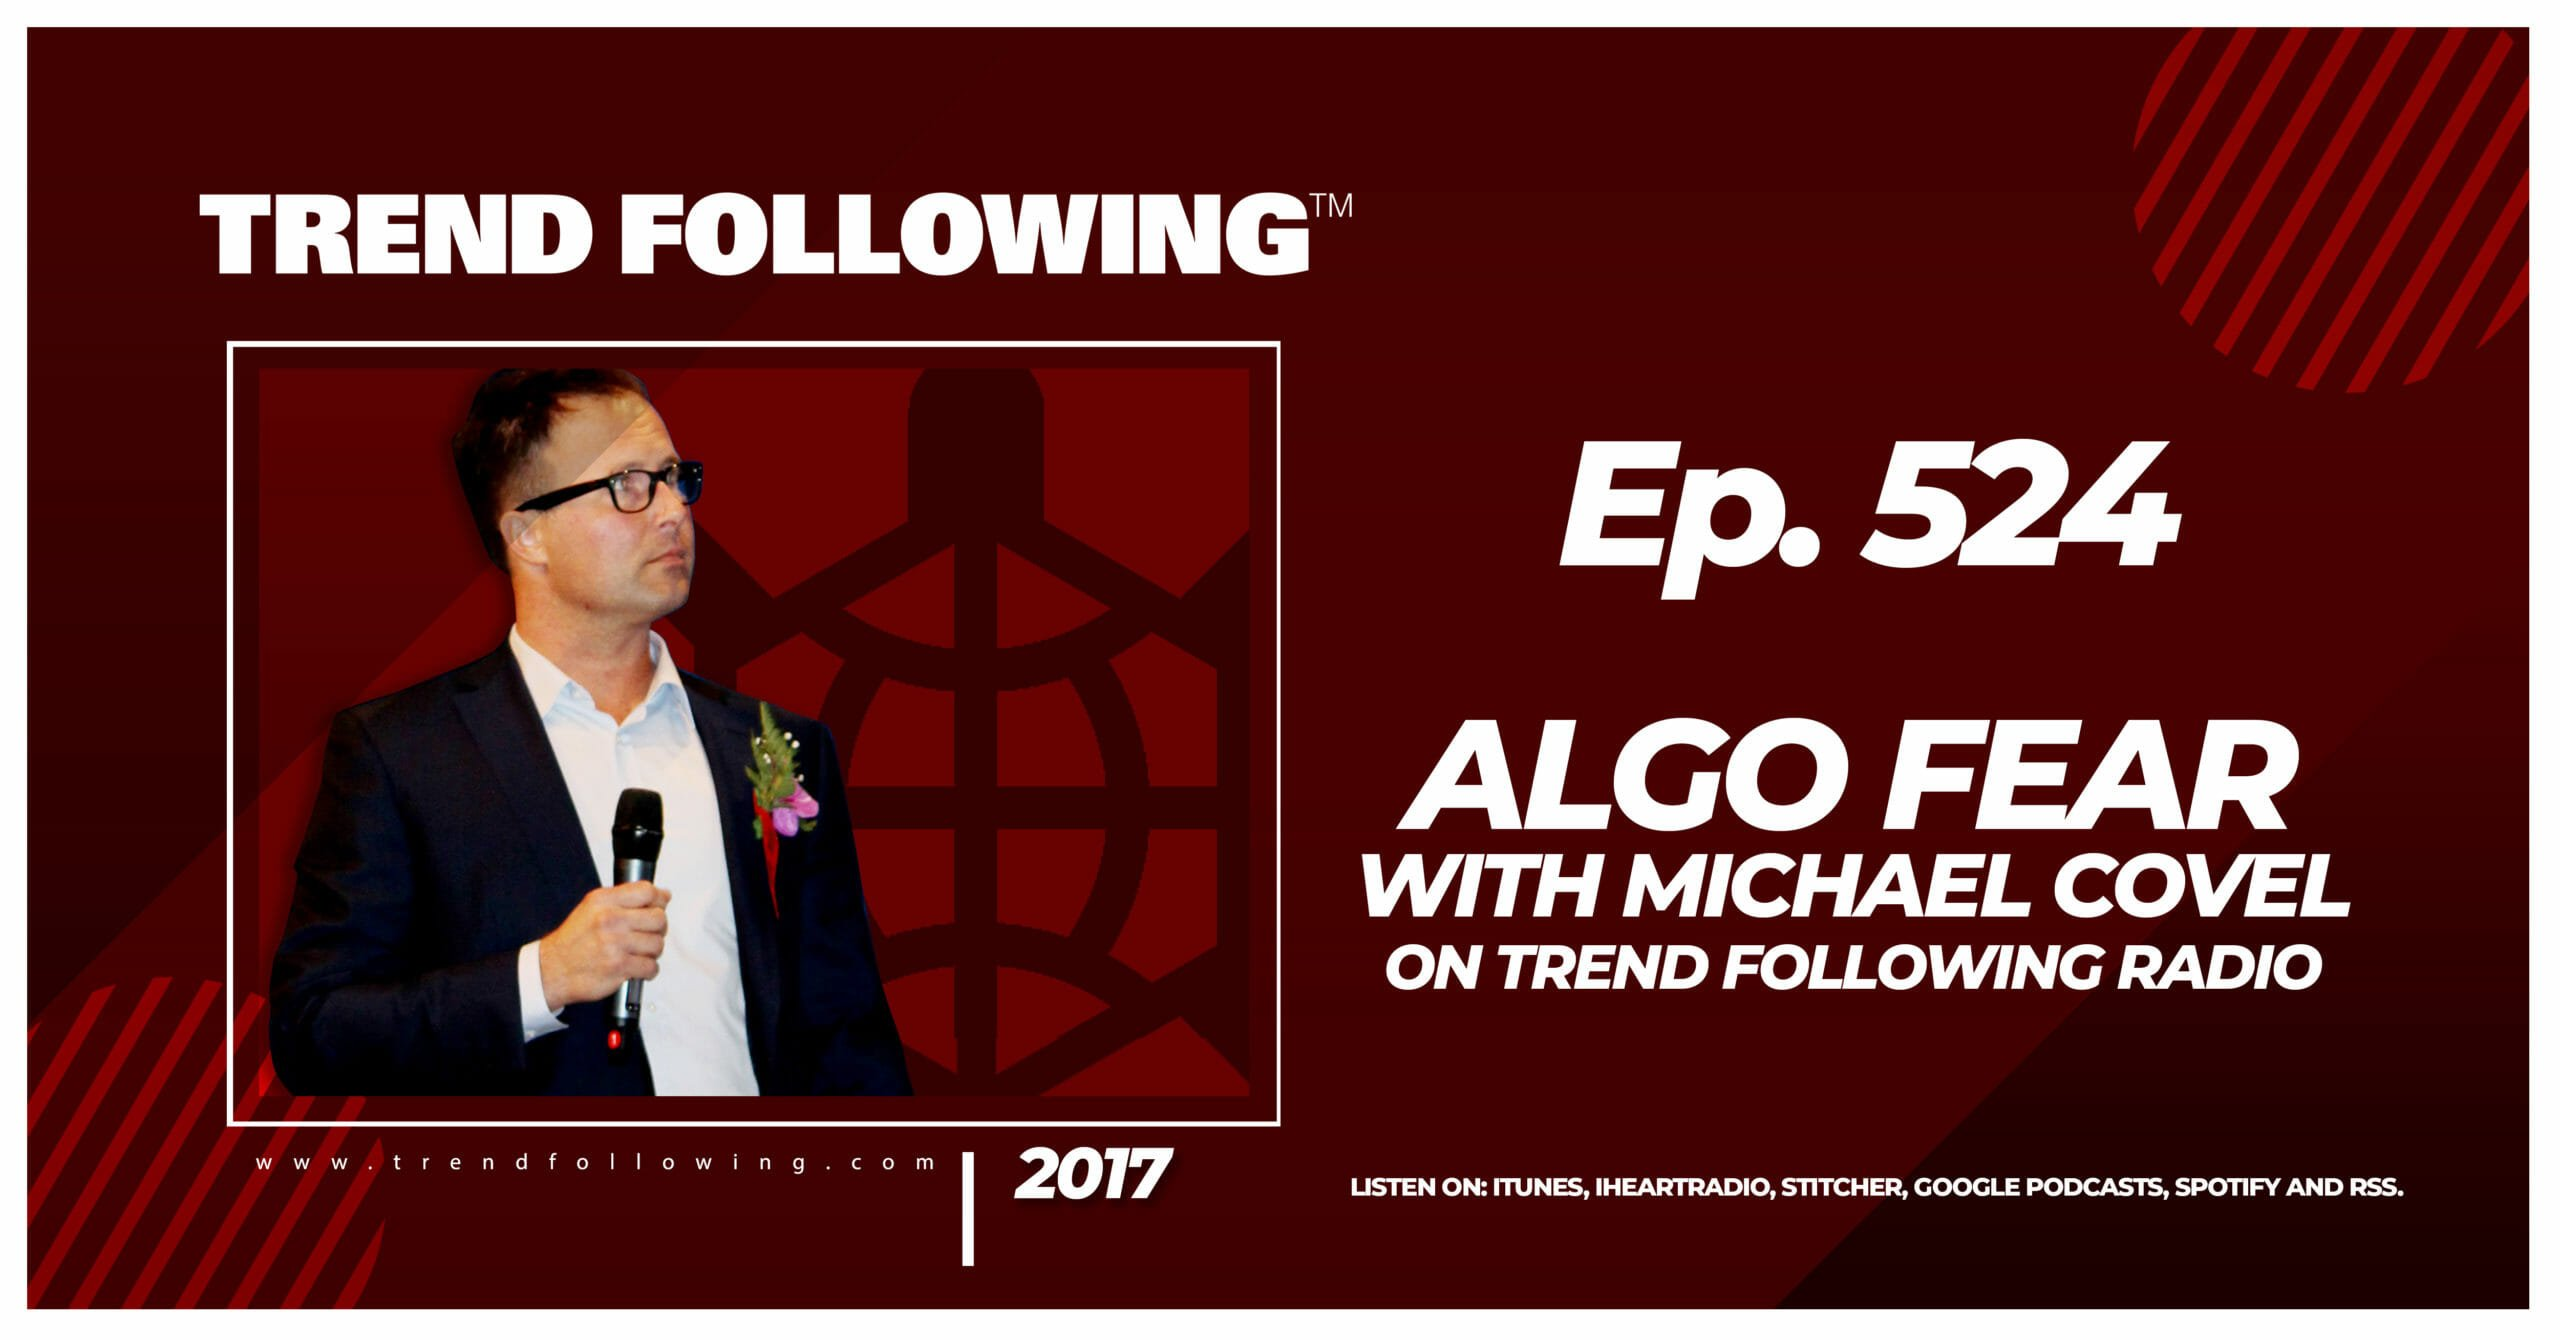 Algo Fear with Michael Covel on Trend Following Radio